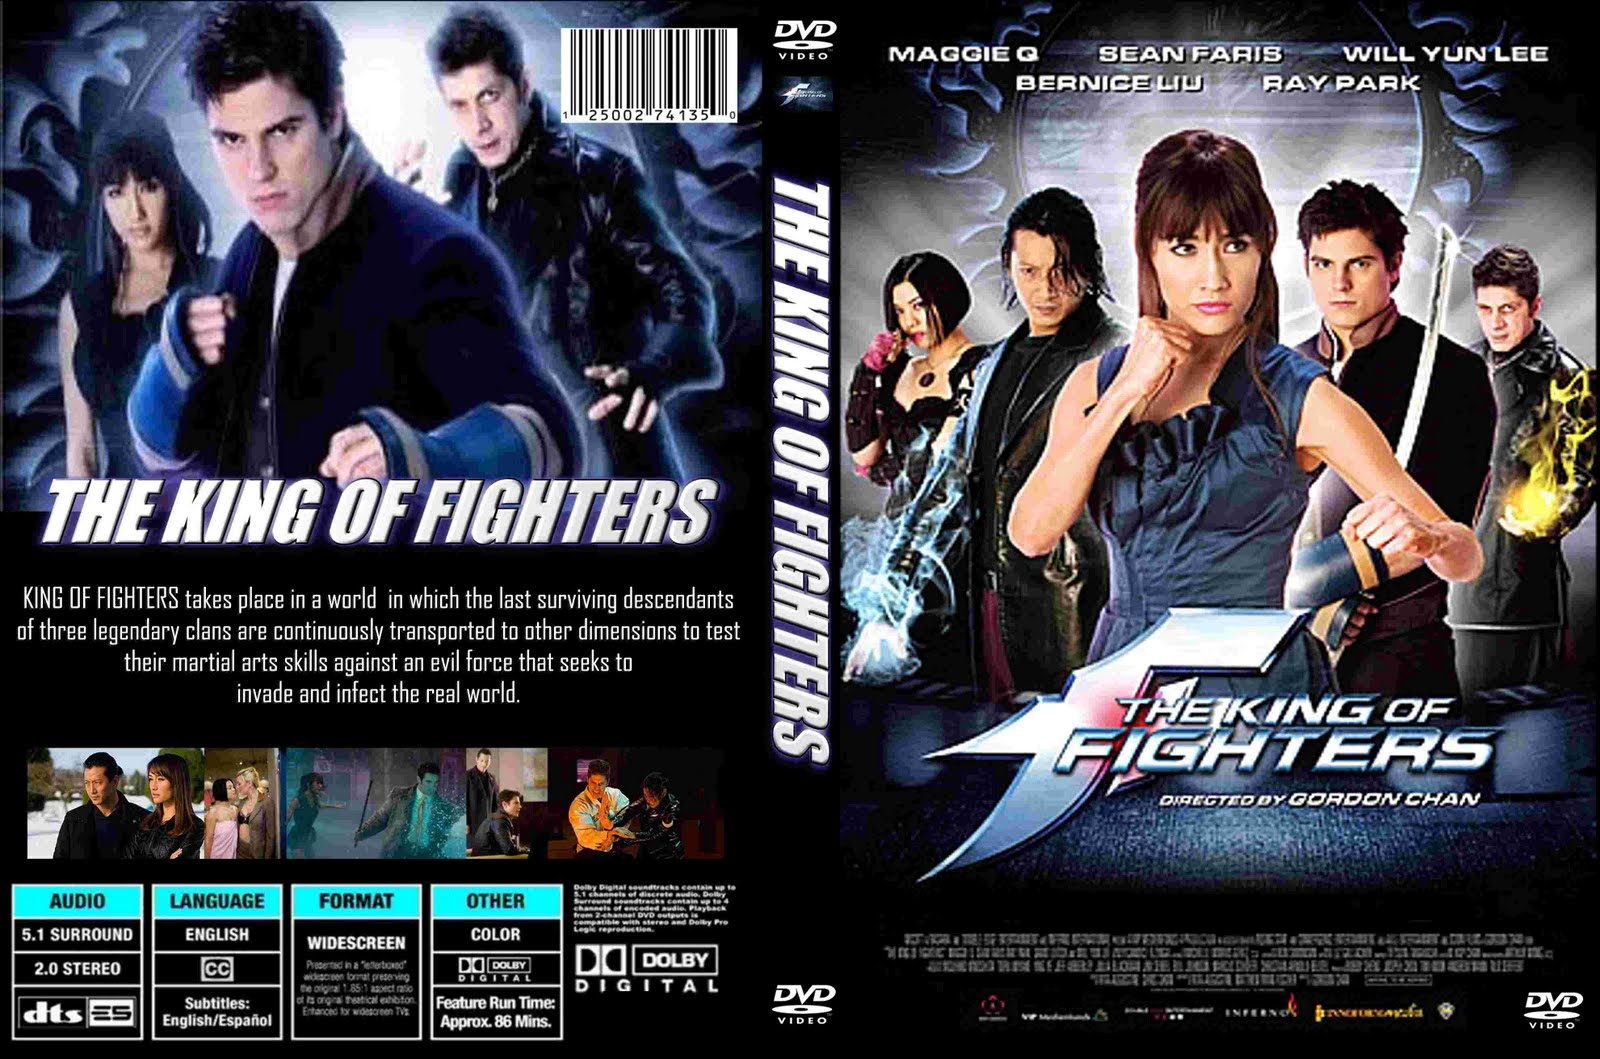 http://1.bp.blogspot.com/_BhTiU_Esy-8/TIQqRZwZ7tI/AAAAAAAAAHU/Q0FoNFmgfvI/s1600/The%20King%20Of%20Fighters%20O%20Filme.jpg